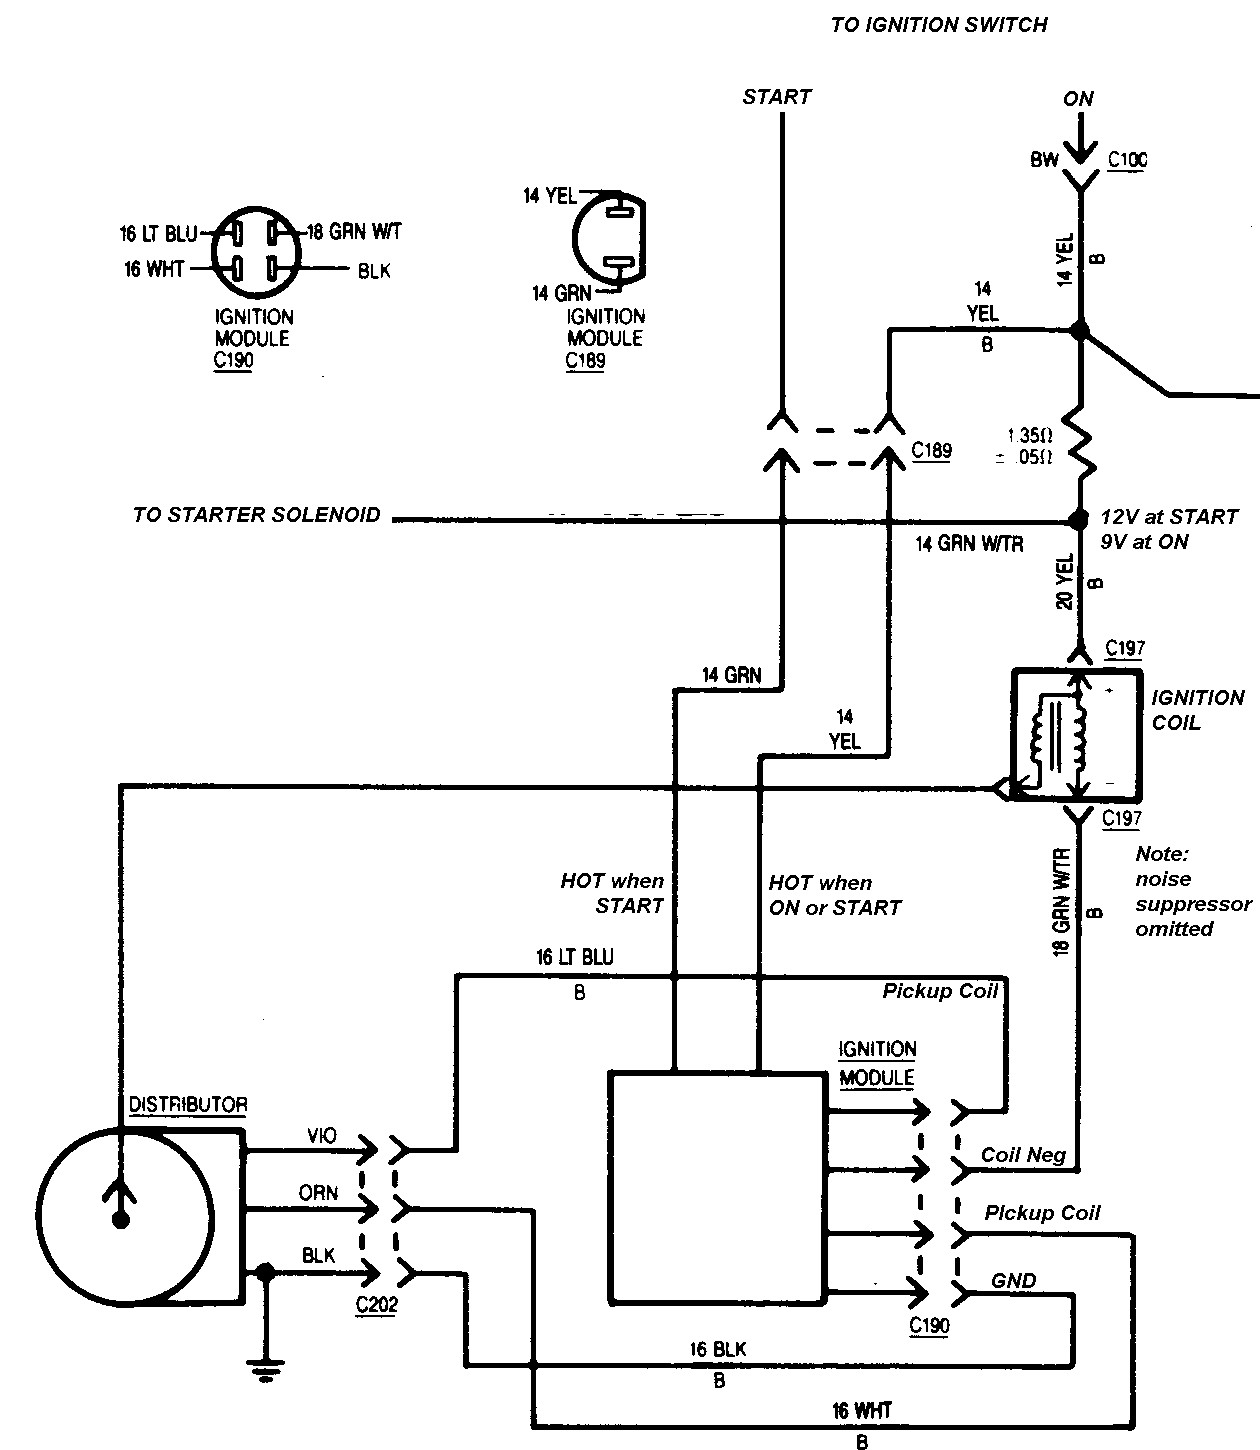 Gm Ignition Starter Wiring - wiring diagrams schematics